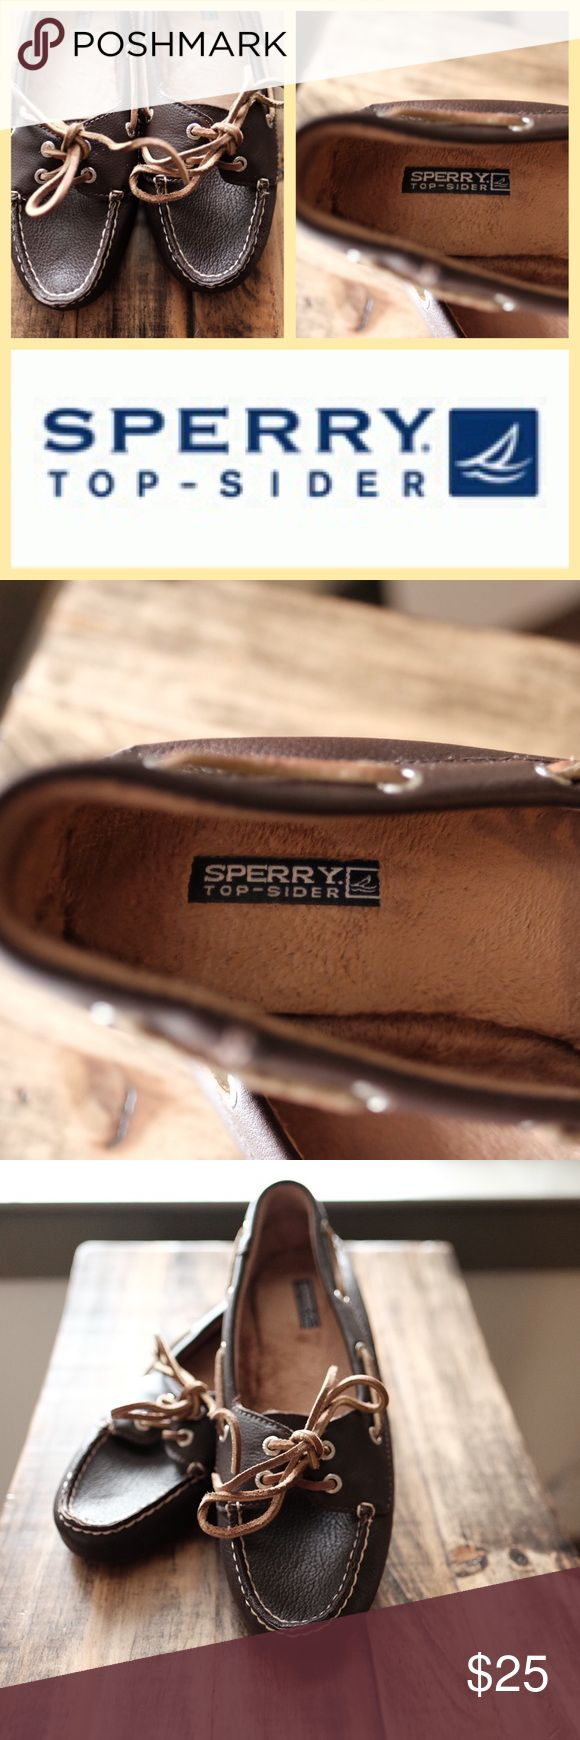 Sperry Top-Sider Brown Skiff Moccasin This pair of Sperry Skiff Moccasins are in great condition and have only been worn a few times. A great casual shoes for running errands as they are quick to slip on and off. Color is dark brown and the material is suede with a rubber bottom. Women's size 8M. There is a very small scuff mark on the left heel (see picture). Hardly noticeable but wanted to make note. Comes from a pet free and smoke free home. Happy poshing! Sperry Top-Sider Shoes Moccasins